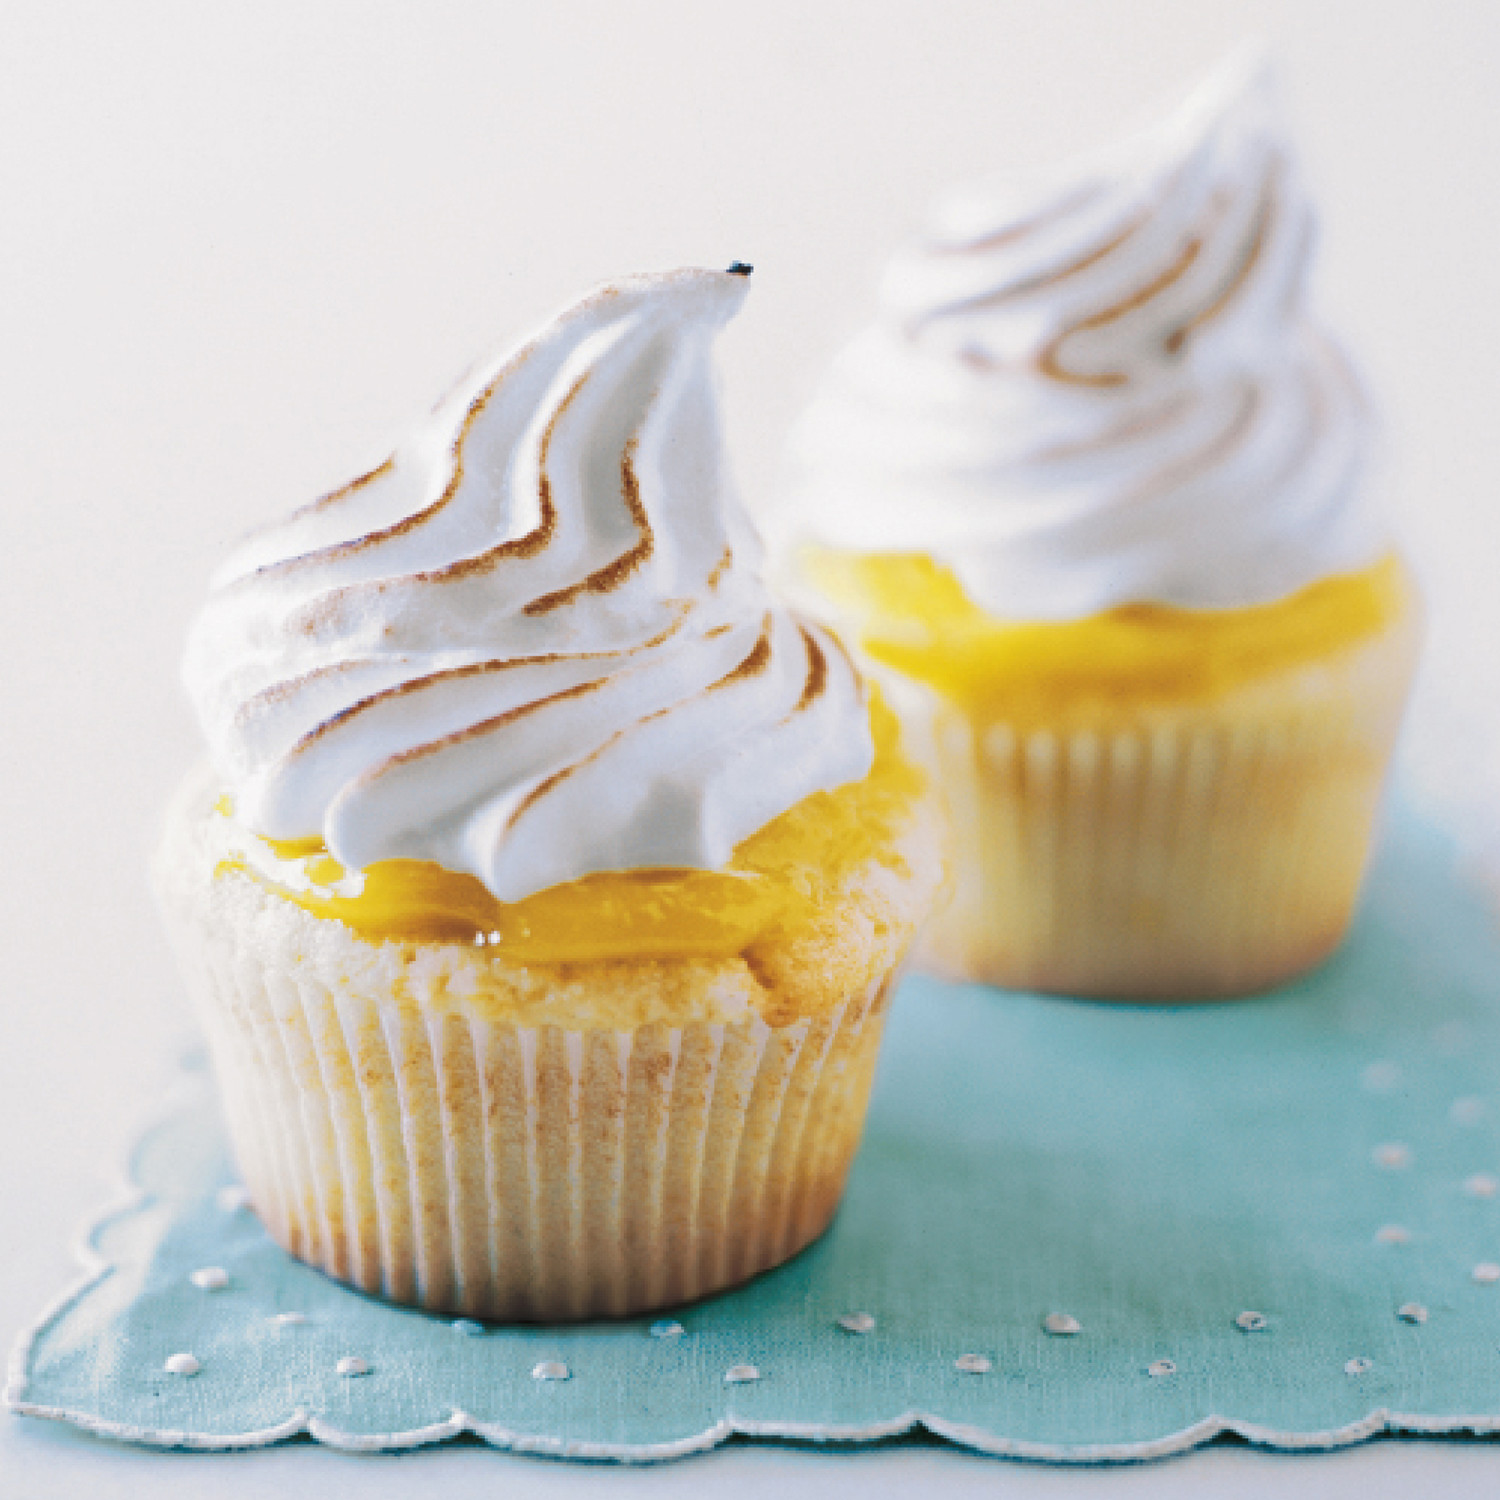 Lemon Meringue Cupcakes Recipe & Video | Martha Stewart